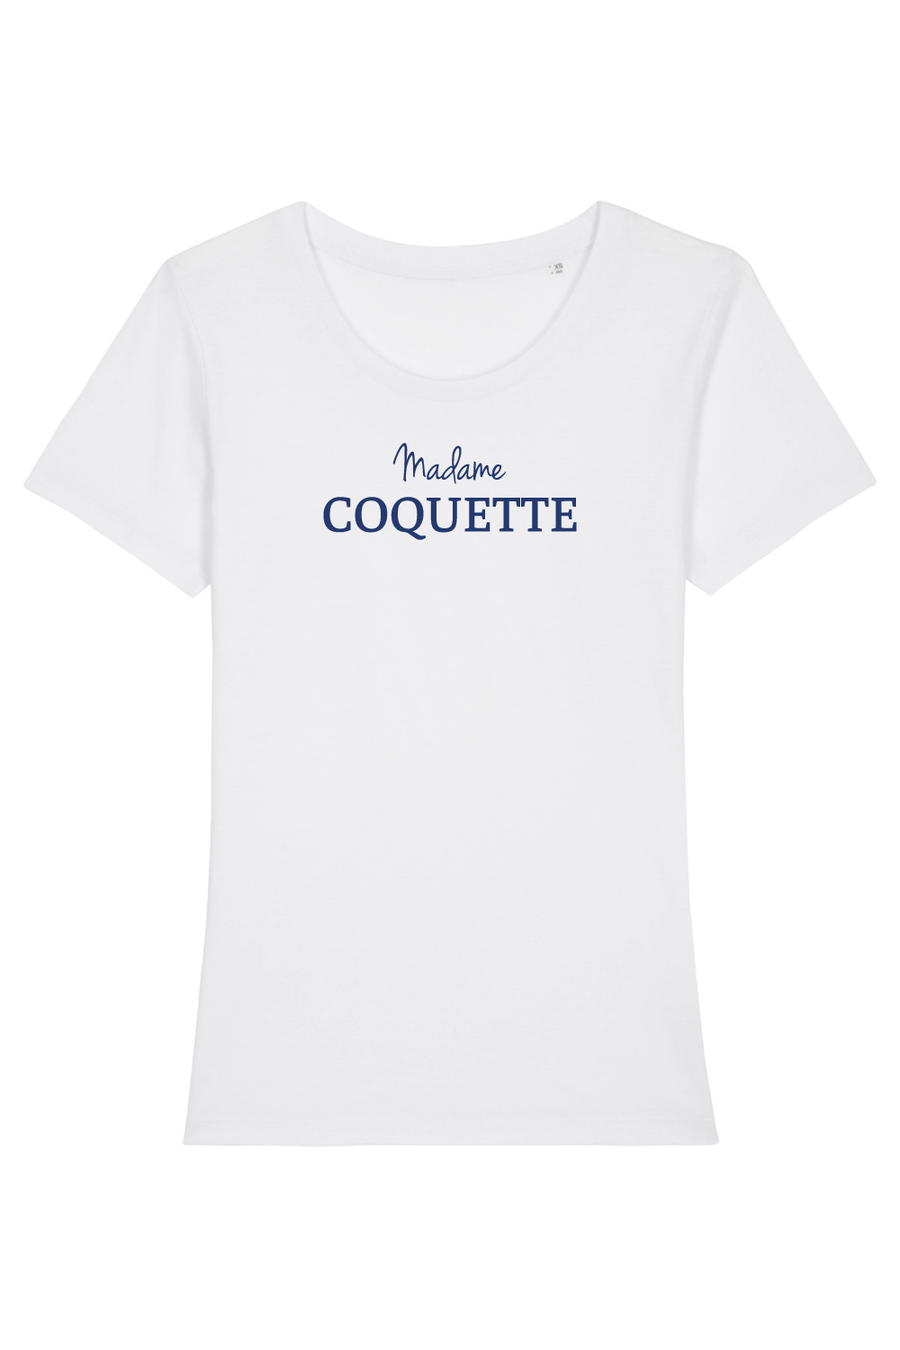 Madame coquette - Joh Clothing